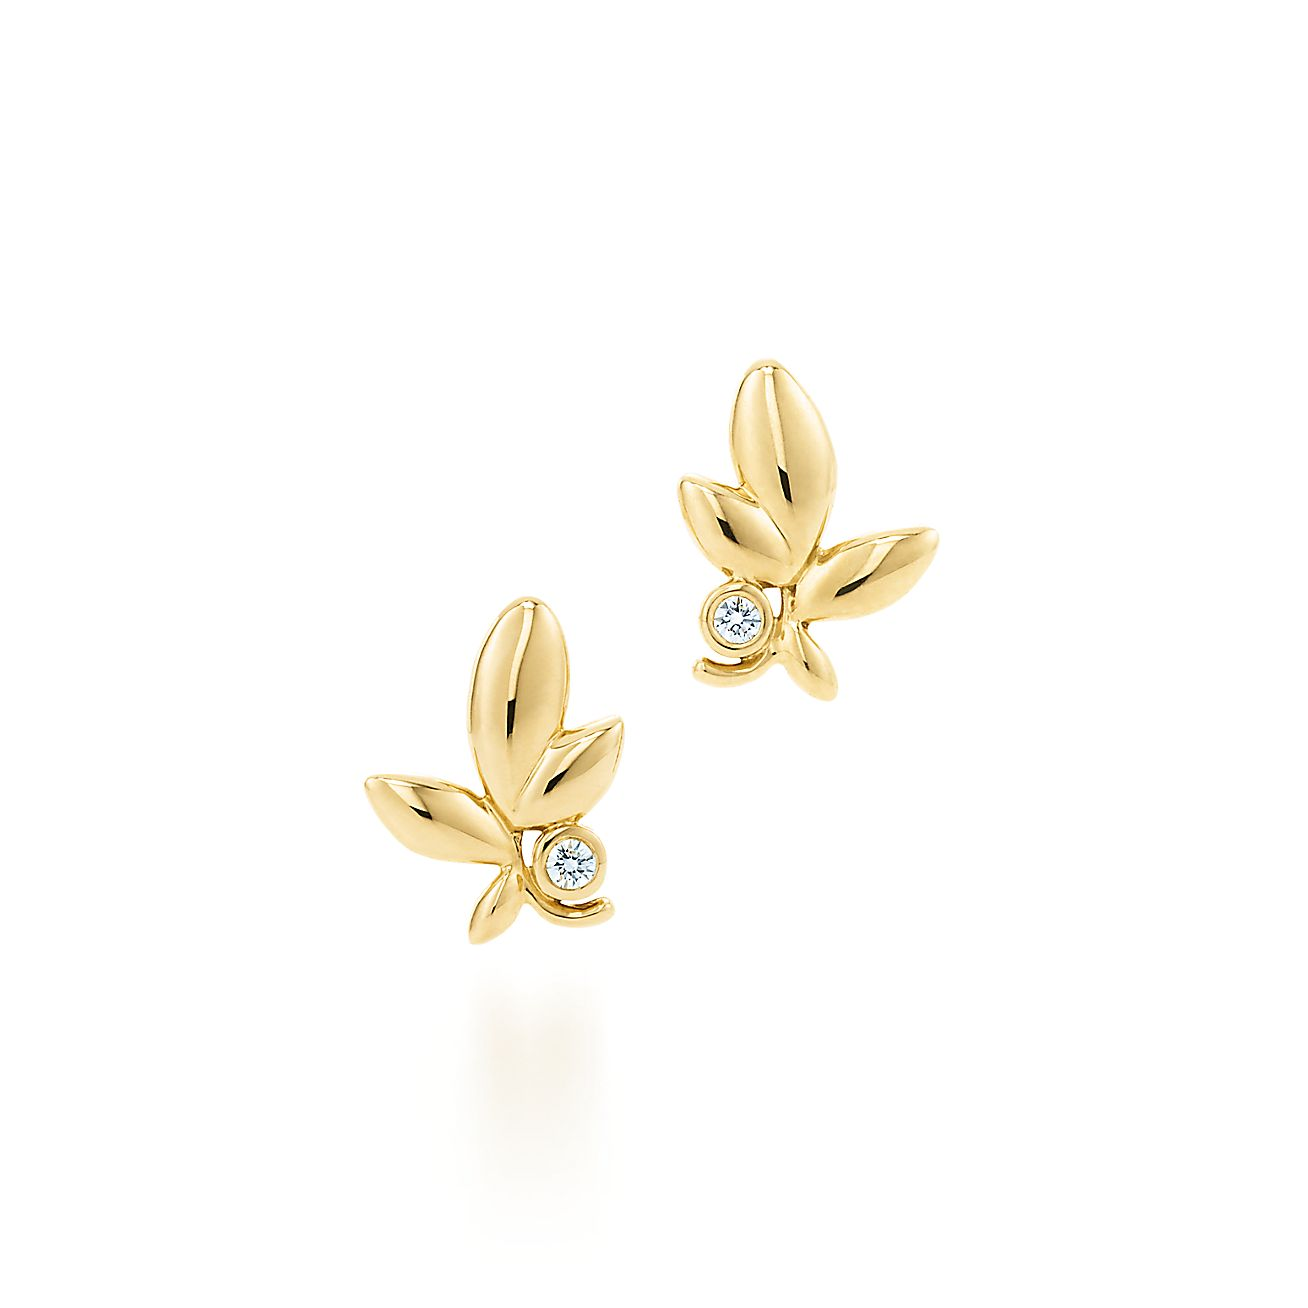 Paloma Pico Olive Leaf Earrings In 18k Gold With Diamonds Tiffany Co